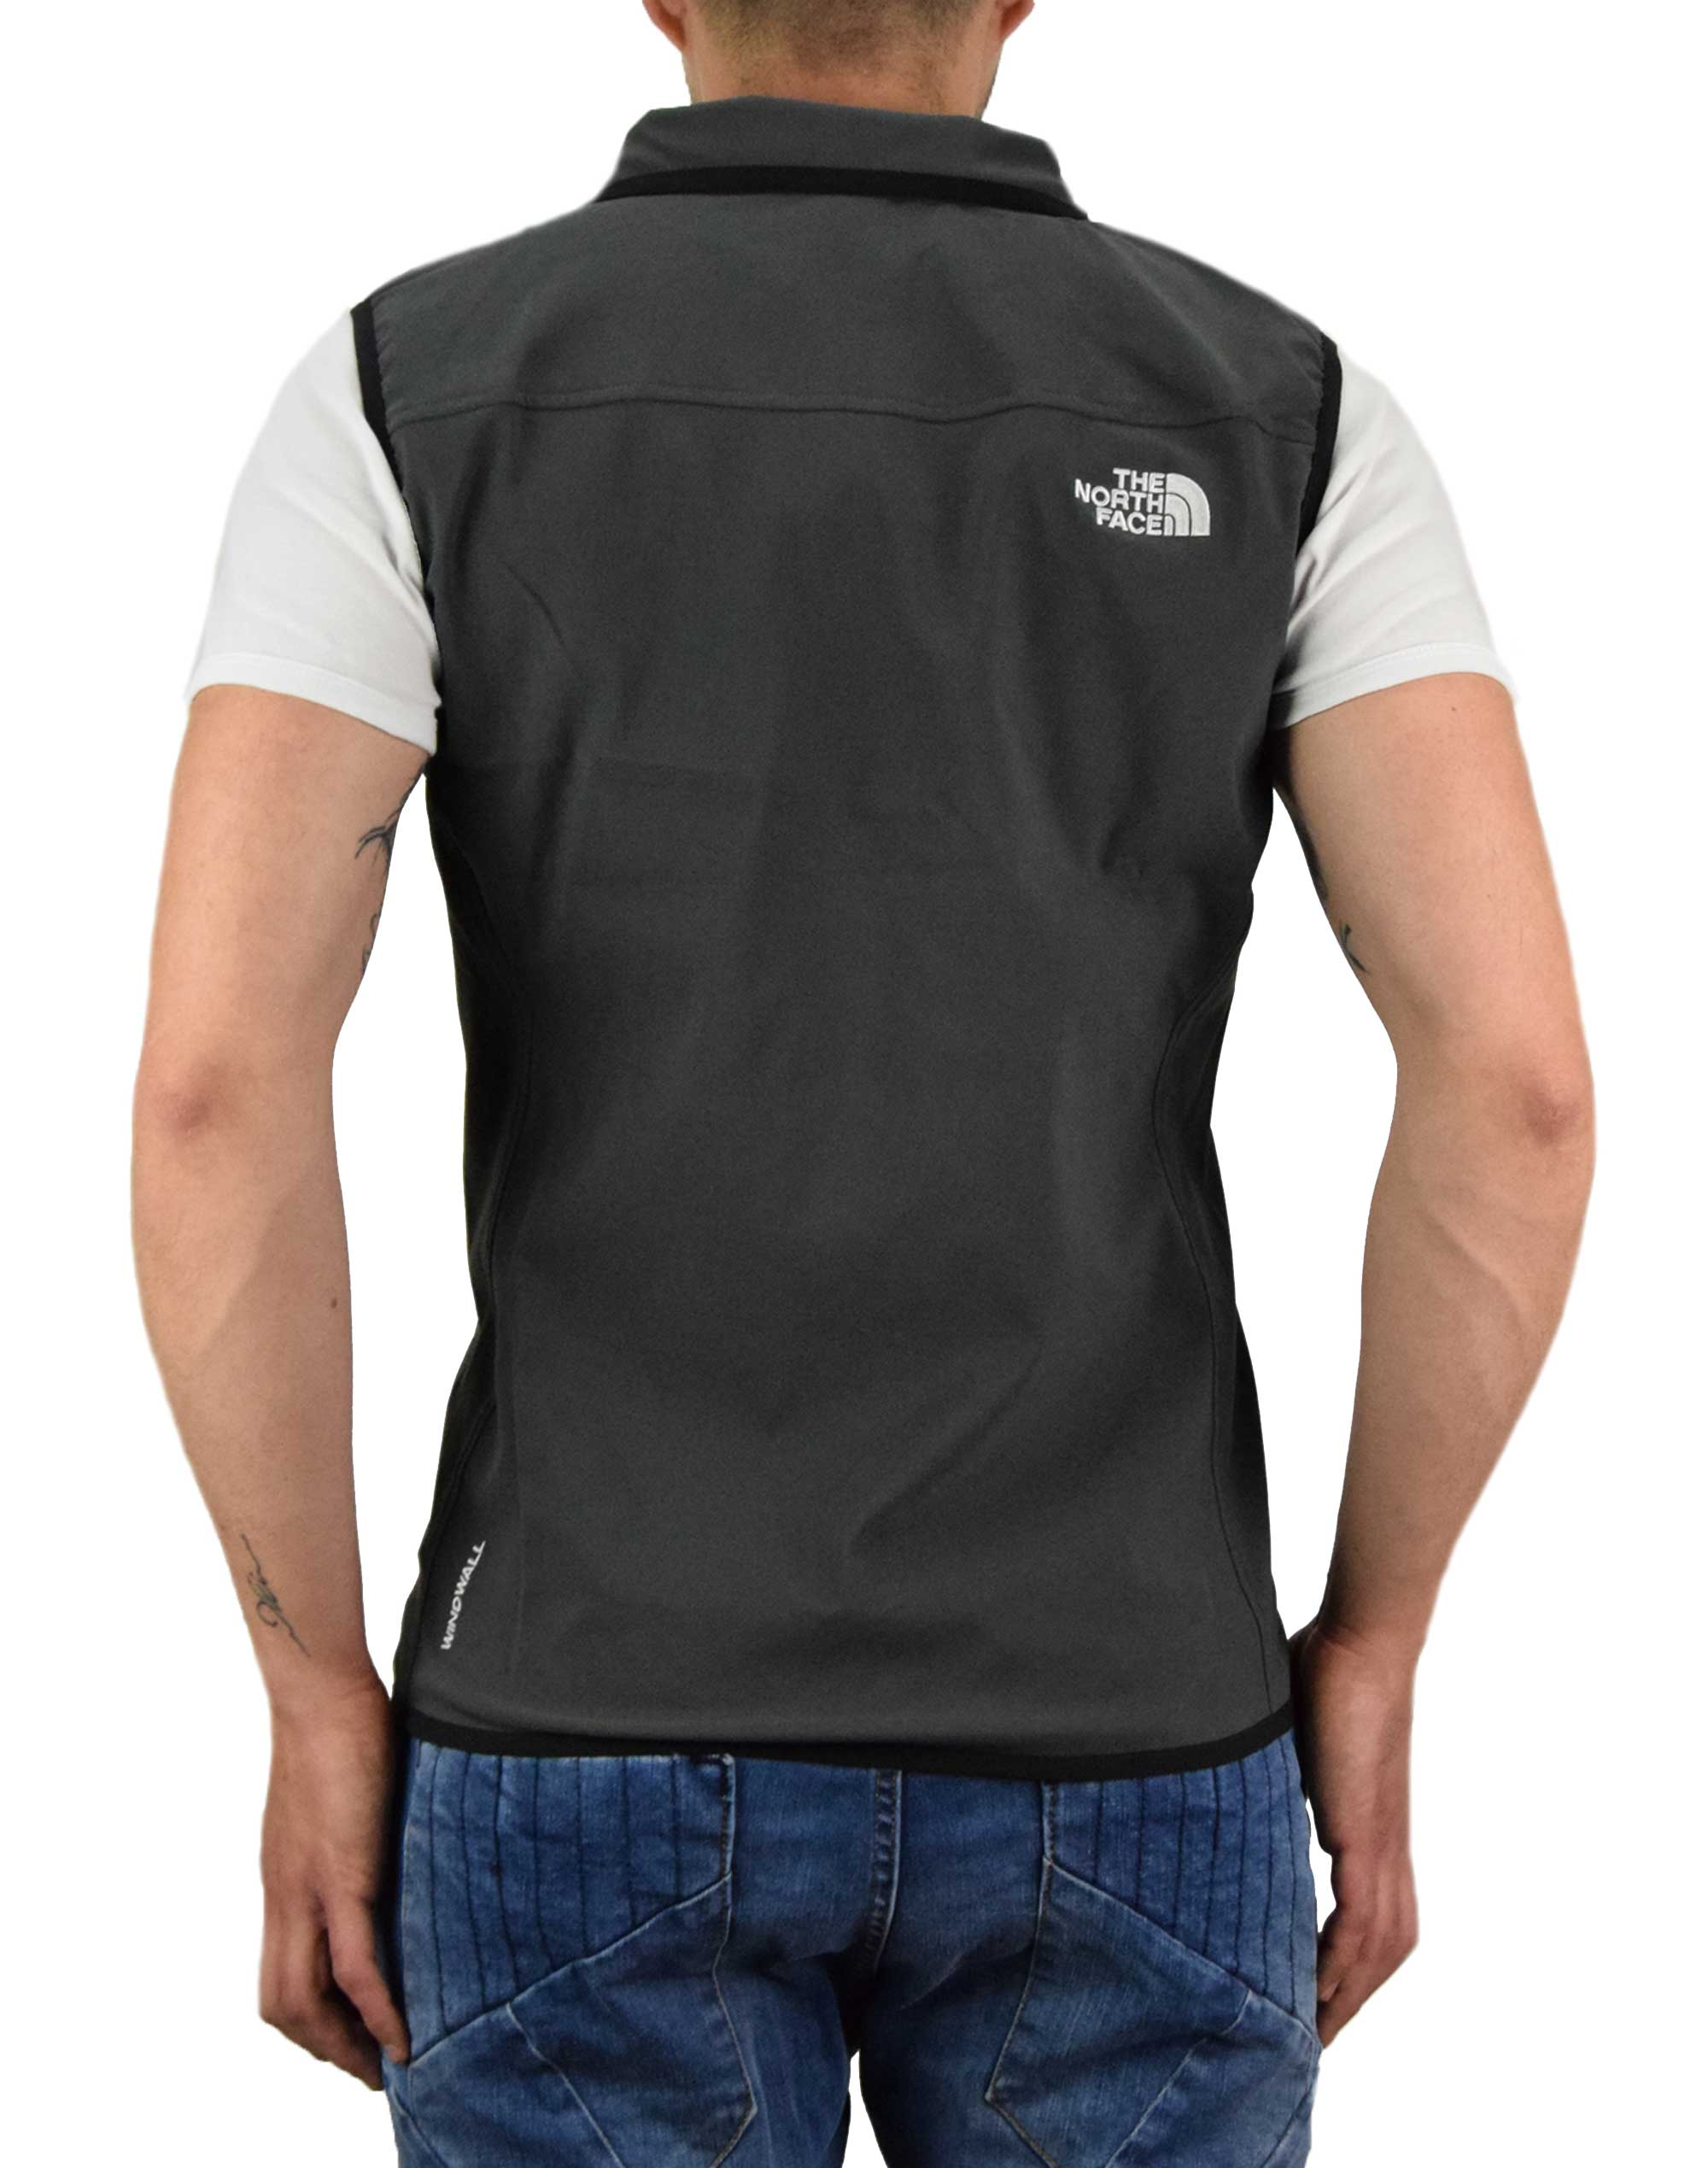 The North Face Nimble Vest (NF0A49550C51) Asphalt Grey